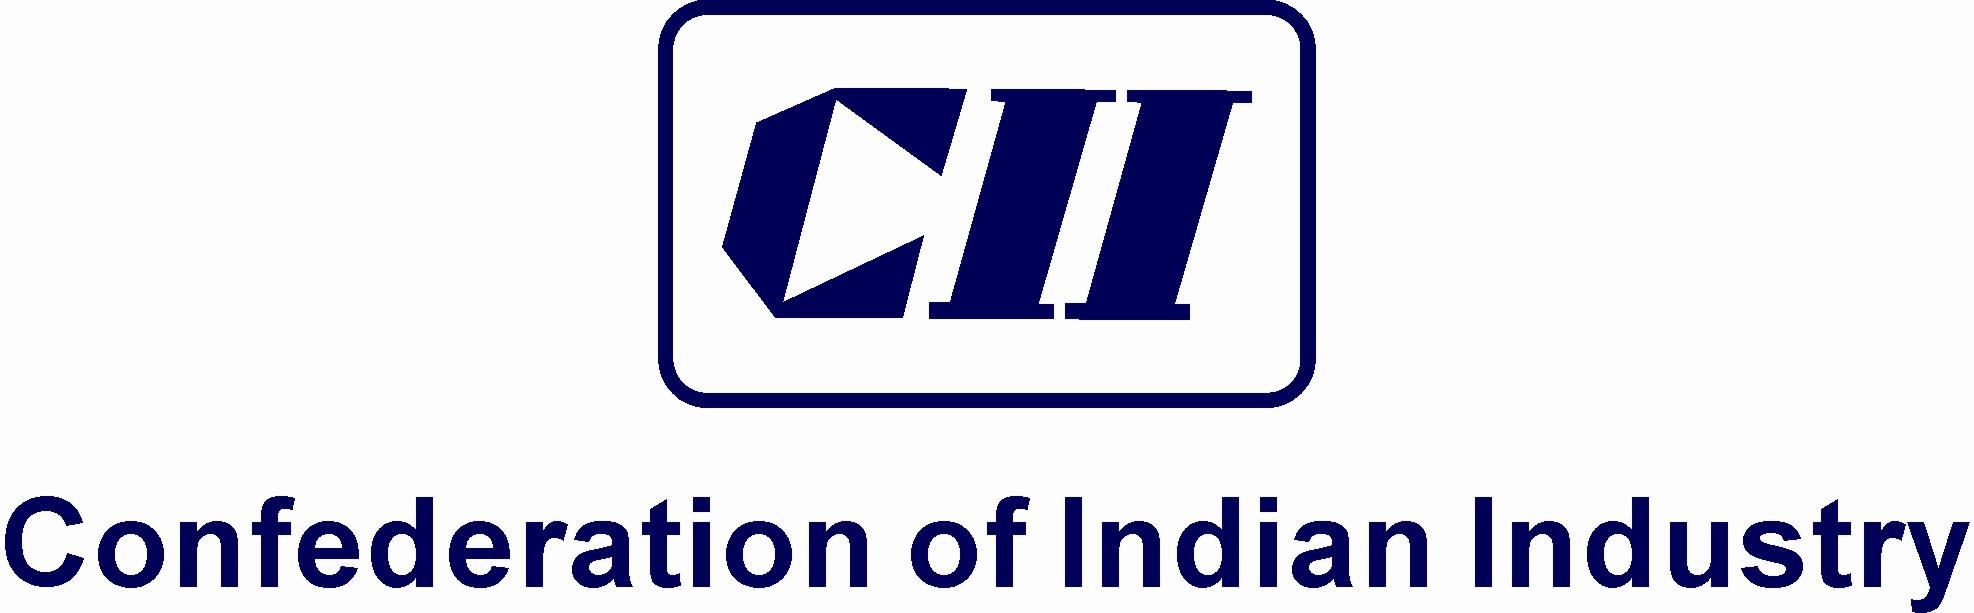 CII colour1 - Copy